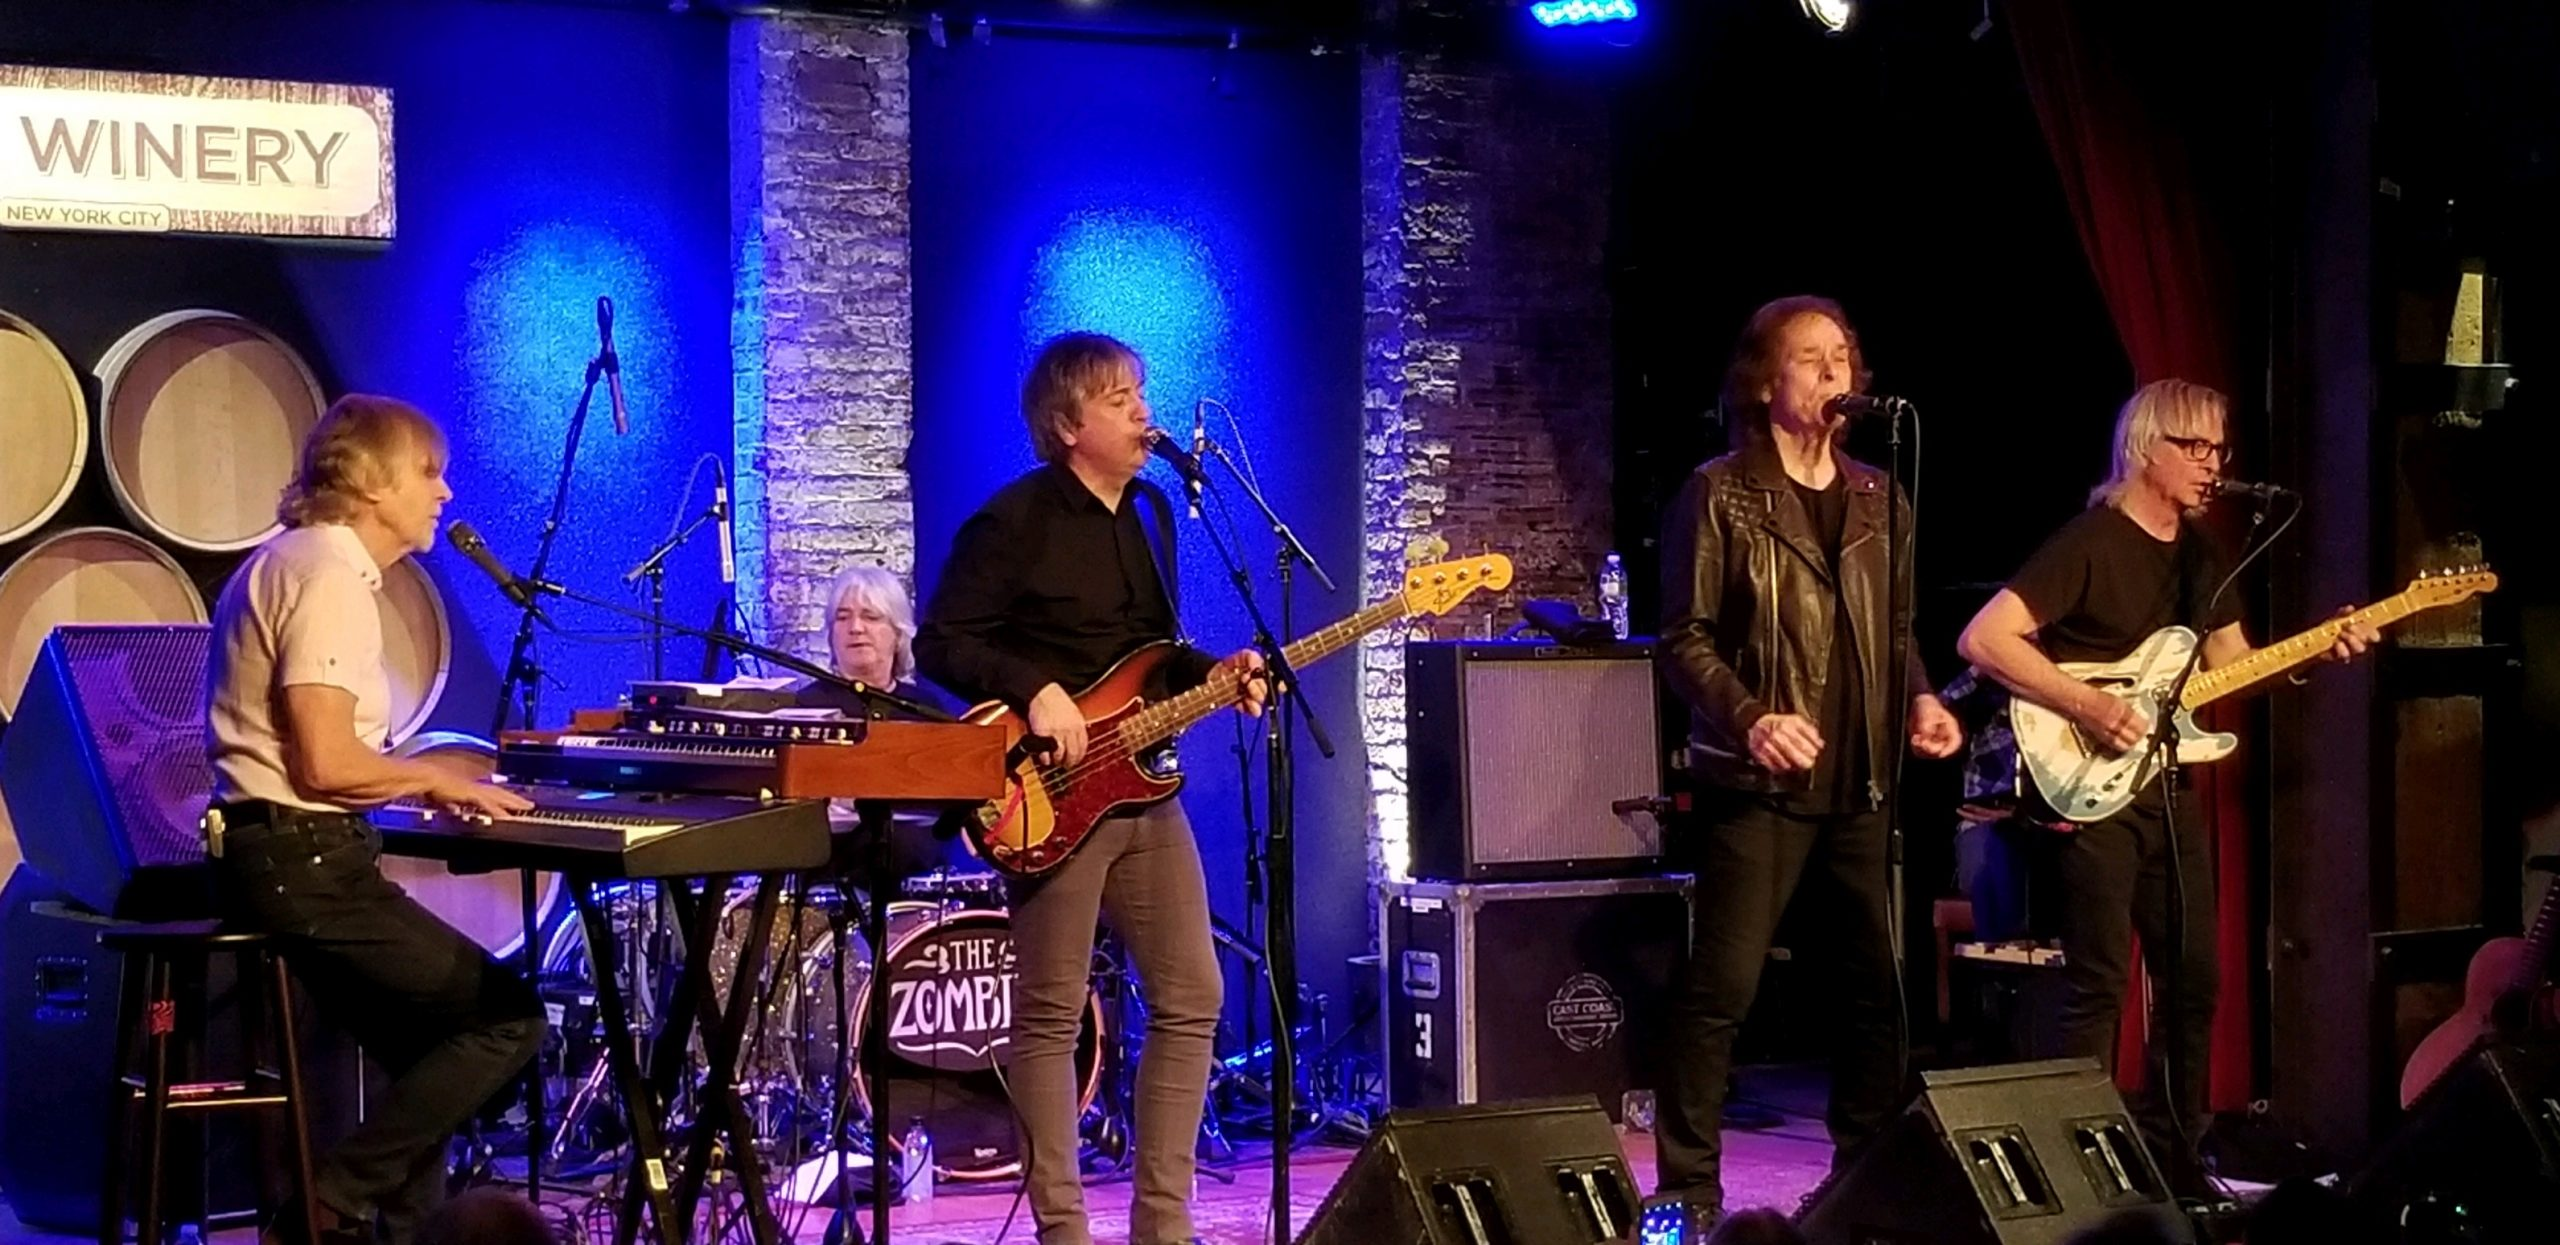 The current Zombies lineup, left to right: Rod Argent, Steve Rodford, Soren Koch, Colin Blunstone, and Tom Toomey